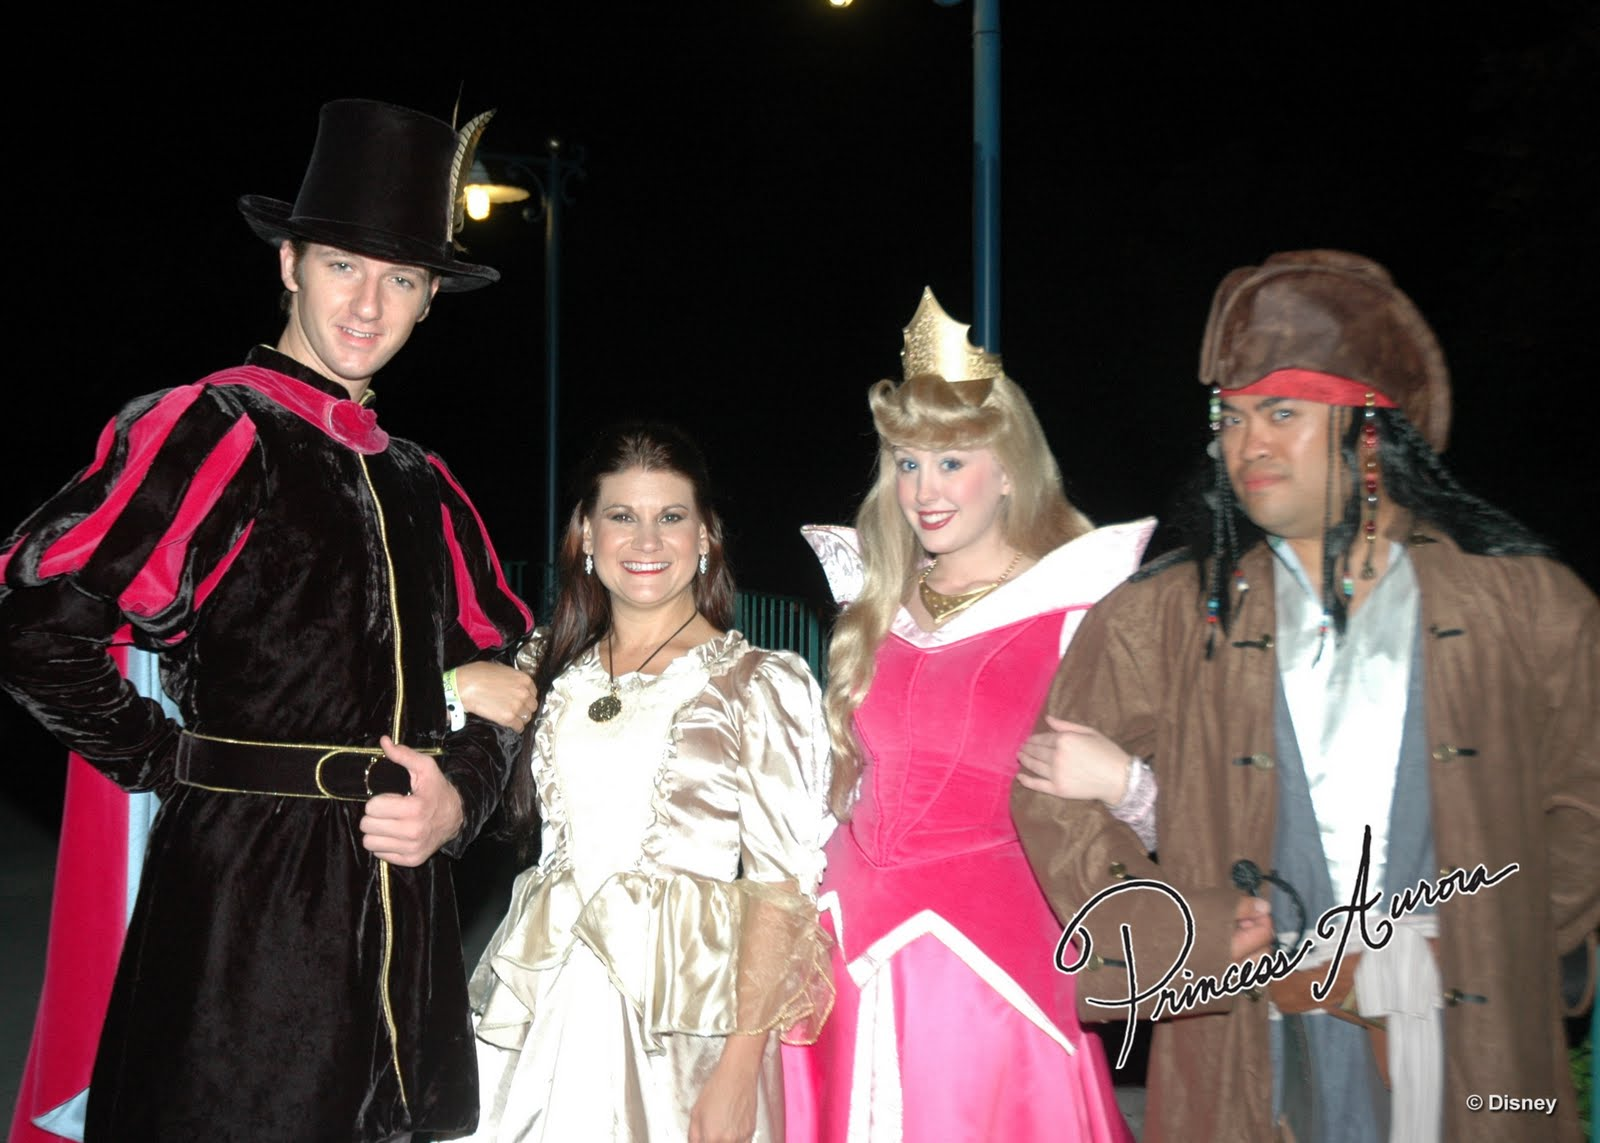 kristen and i meet up with disney royalty at walt disney world